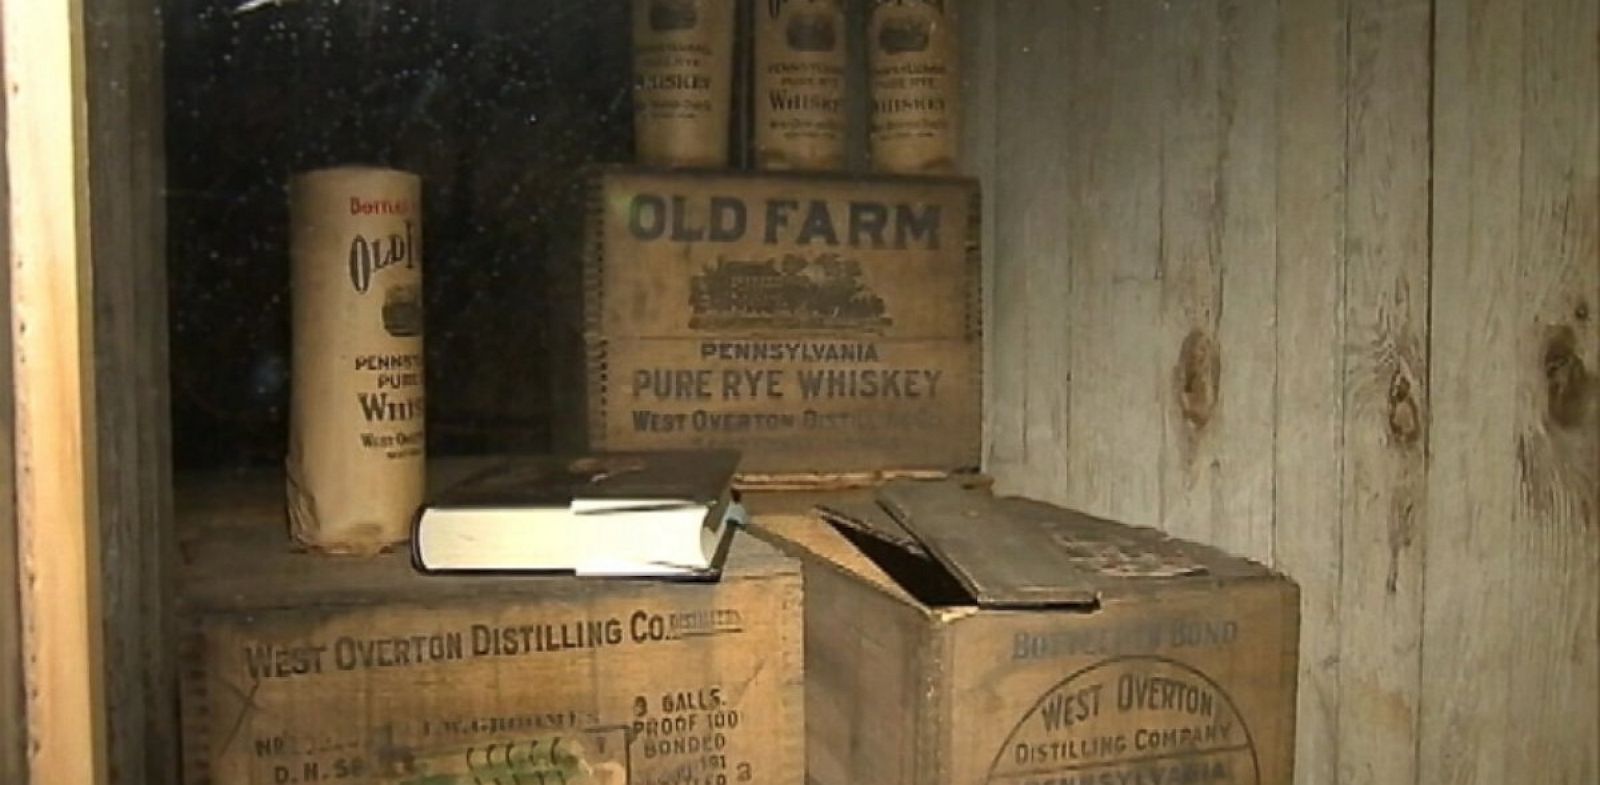 PHOTO: John Saunders is accused of drinking 52 bottles of whiskey valued at $102,000.